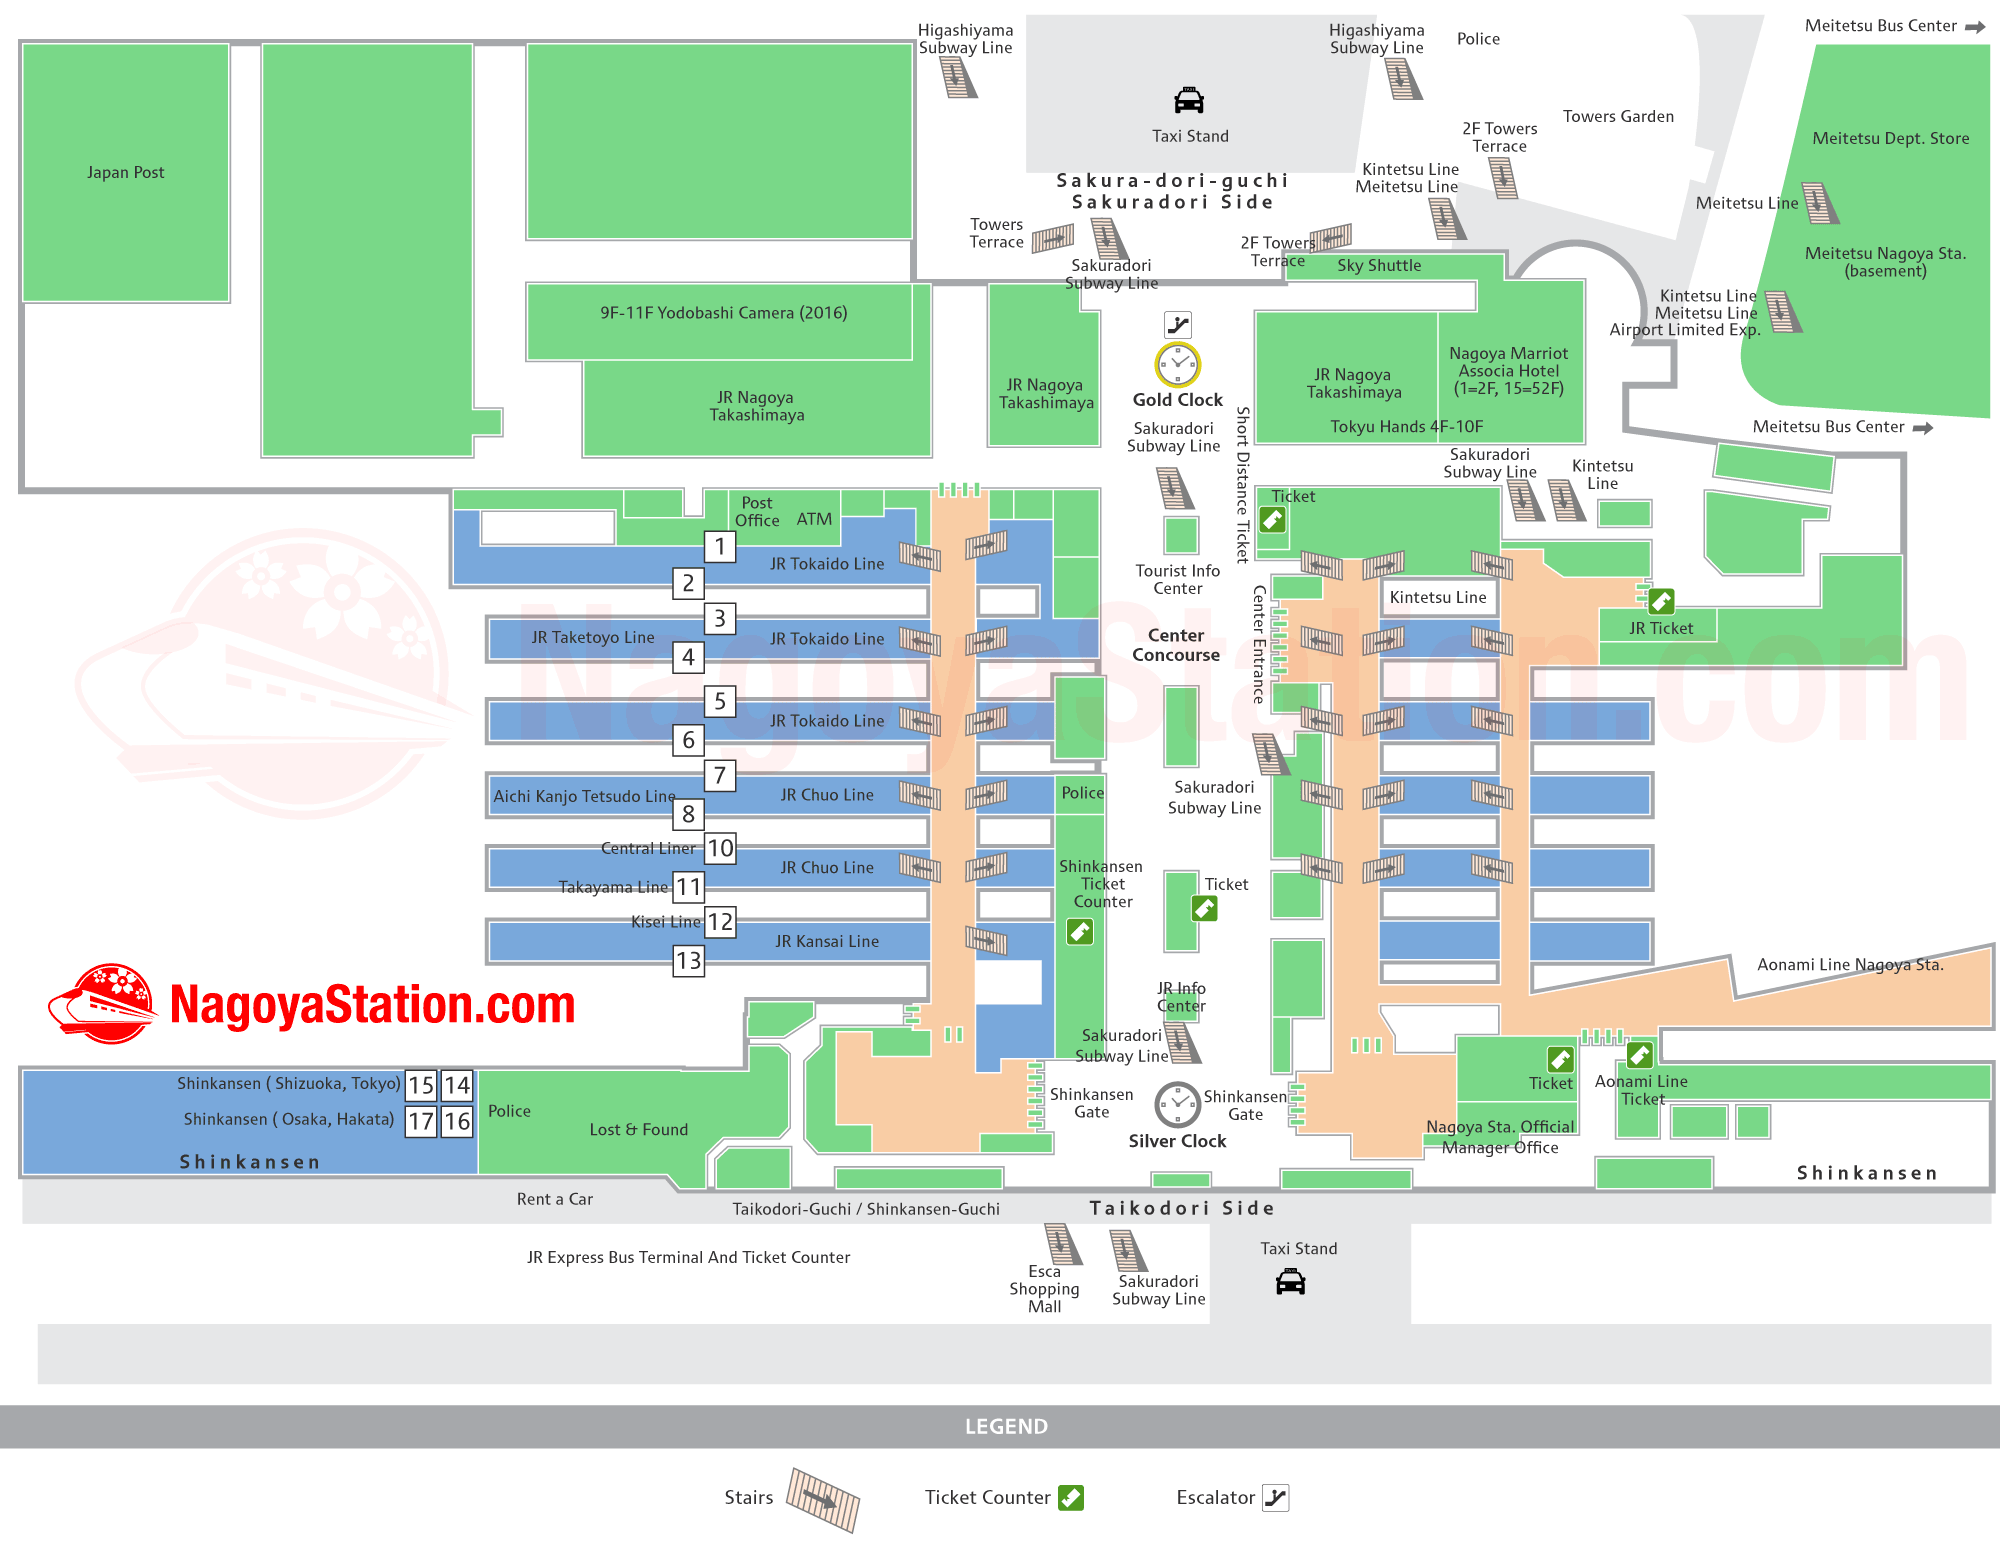 Nagoya Station Map